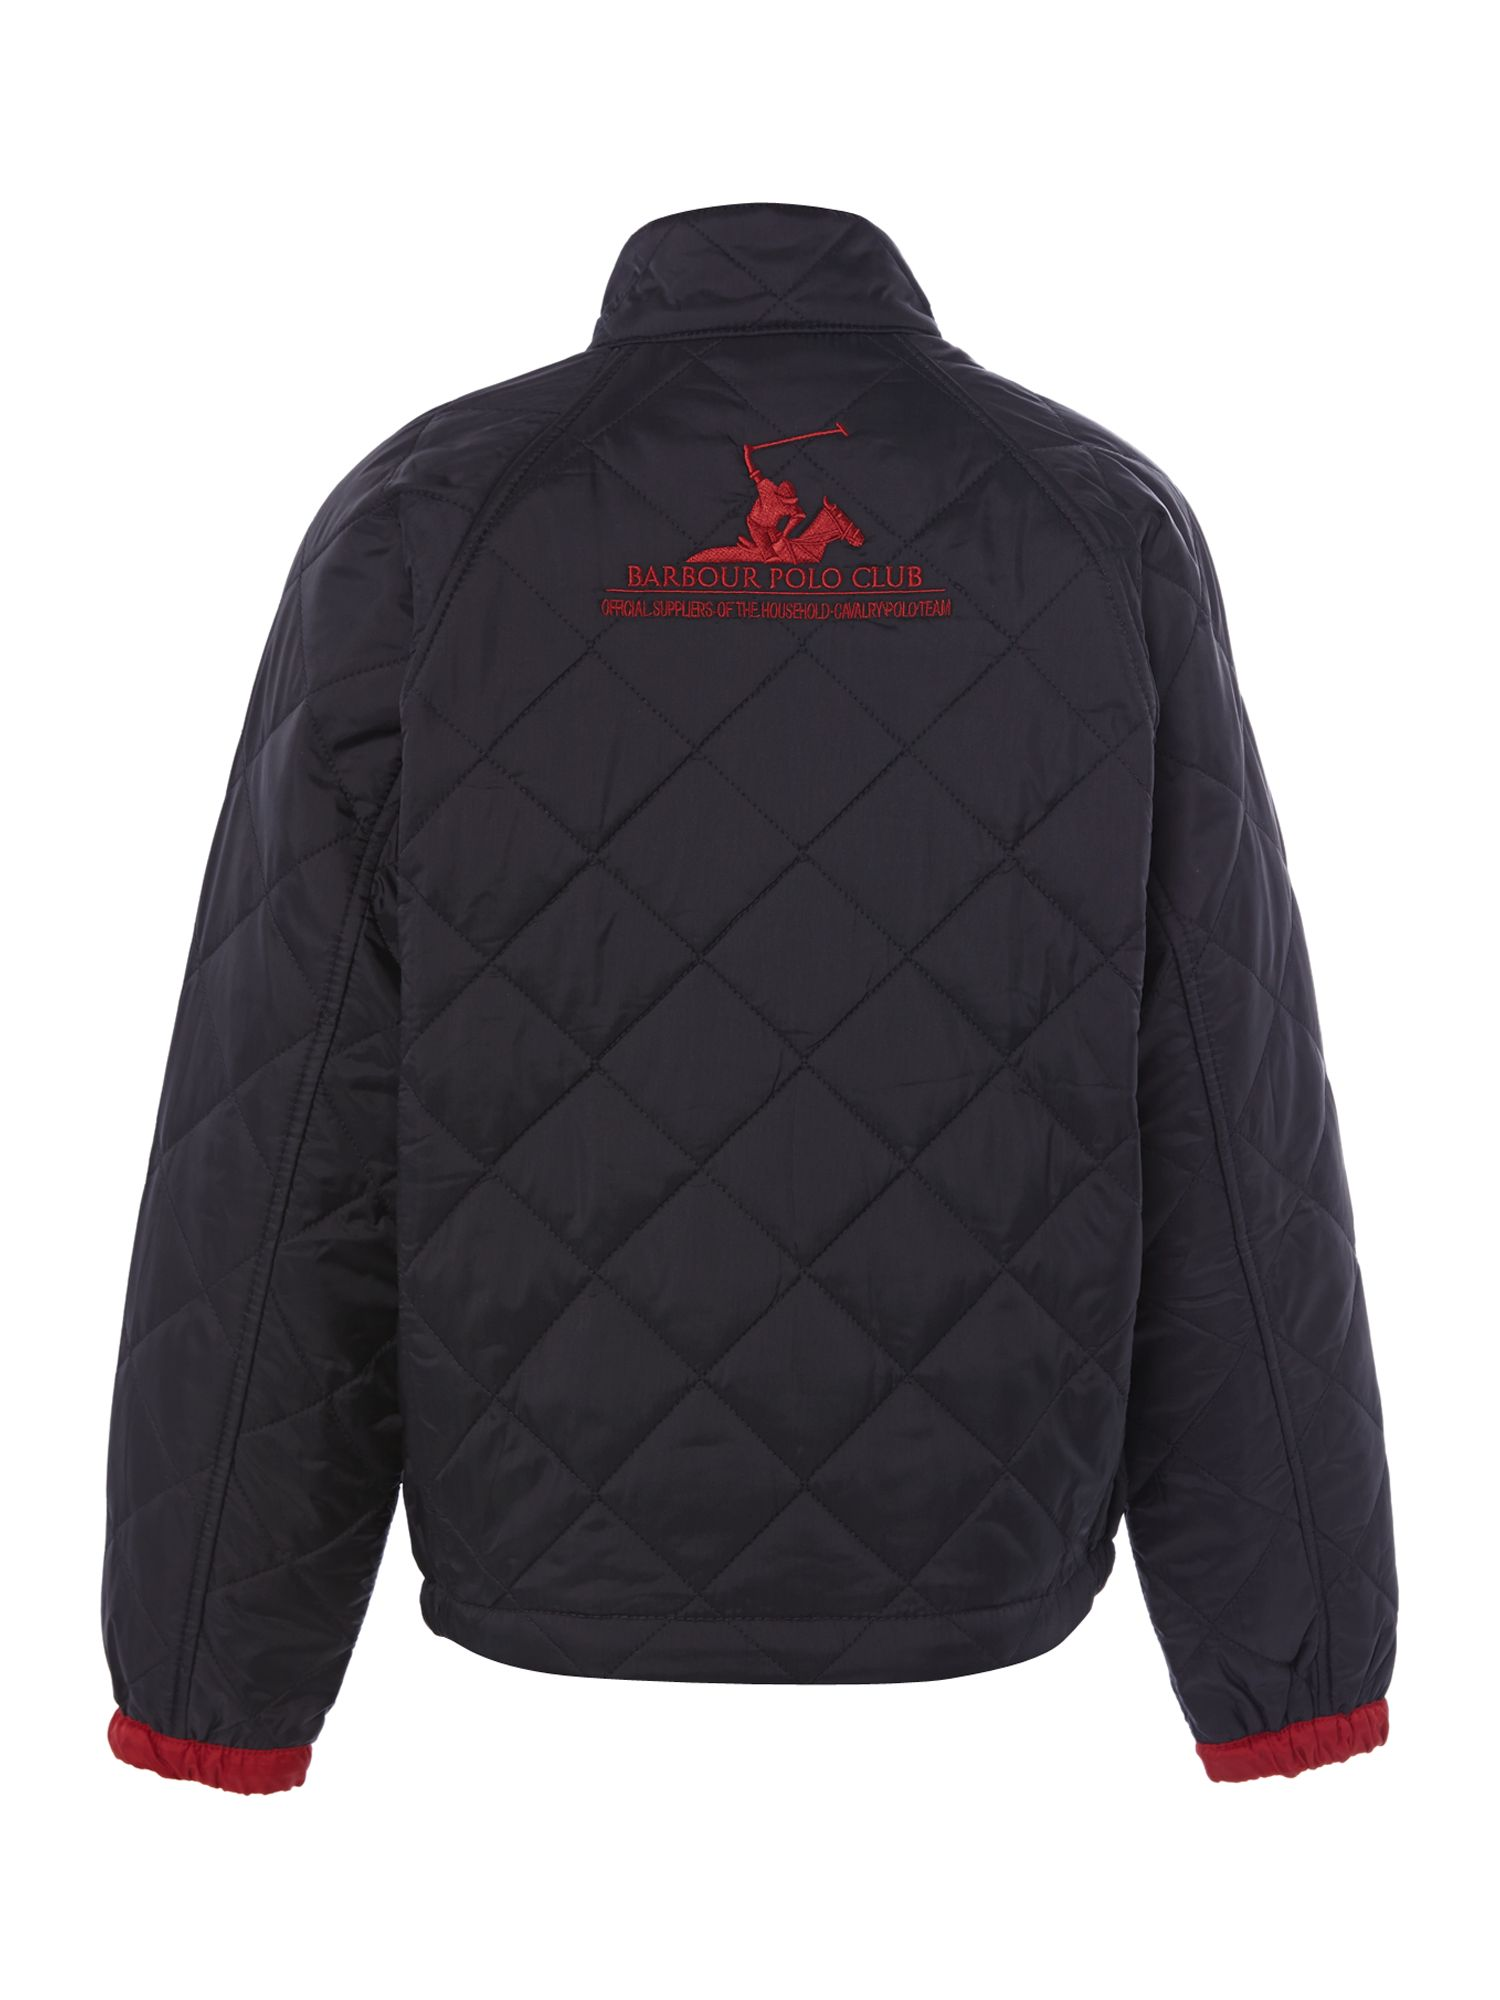 Boys Rambler quilted jacket with polo embroidery